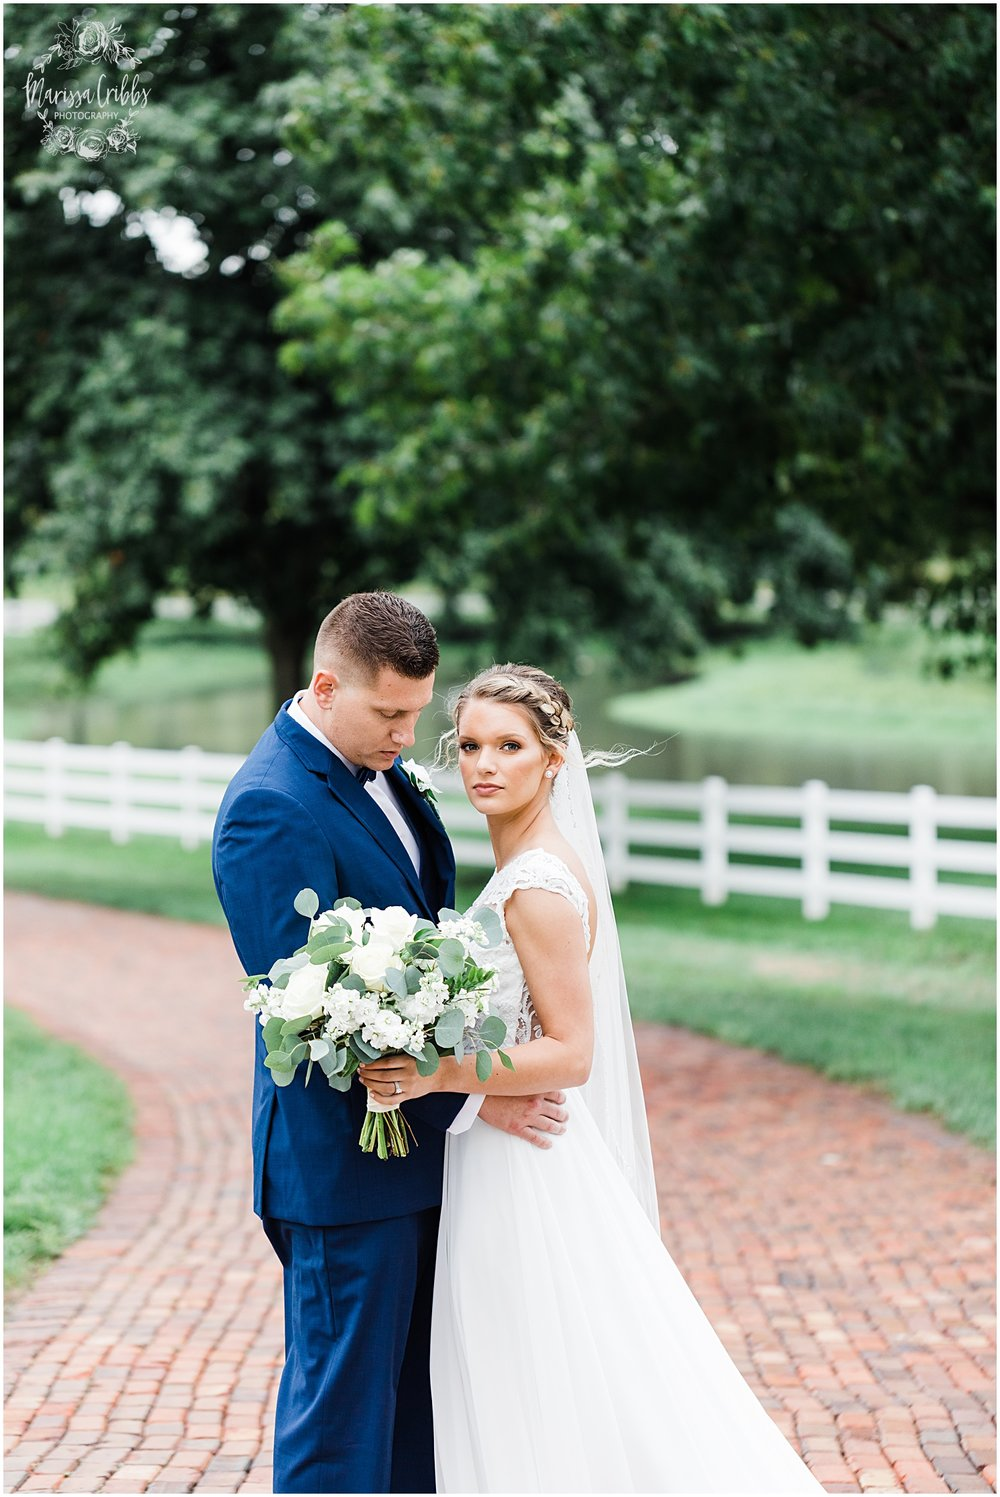 ROUNKLES WEDDING | MARISSA CRIBBS PHOTOGRAPHY | MILDALE FARM_6110.jpg